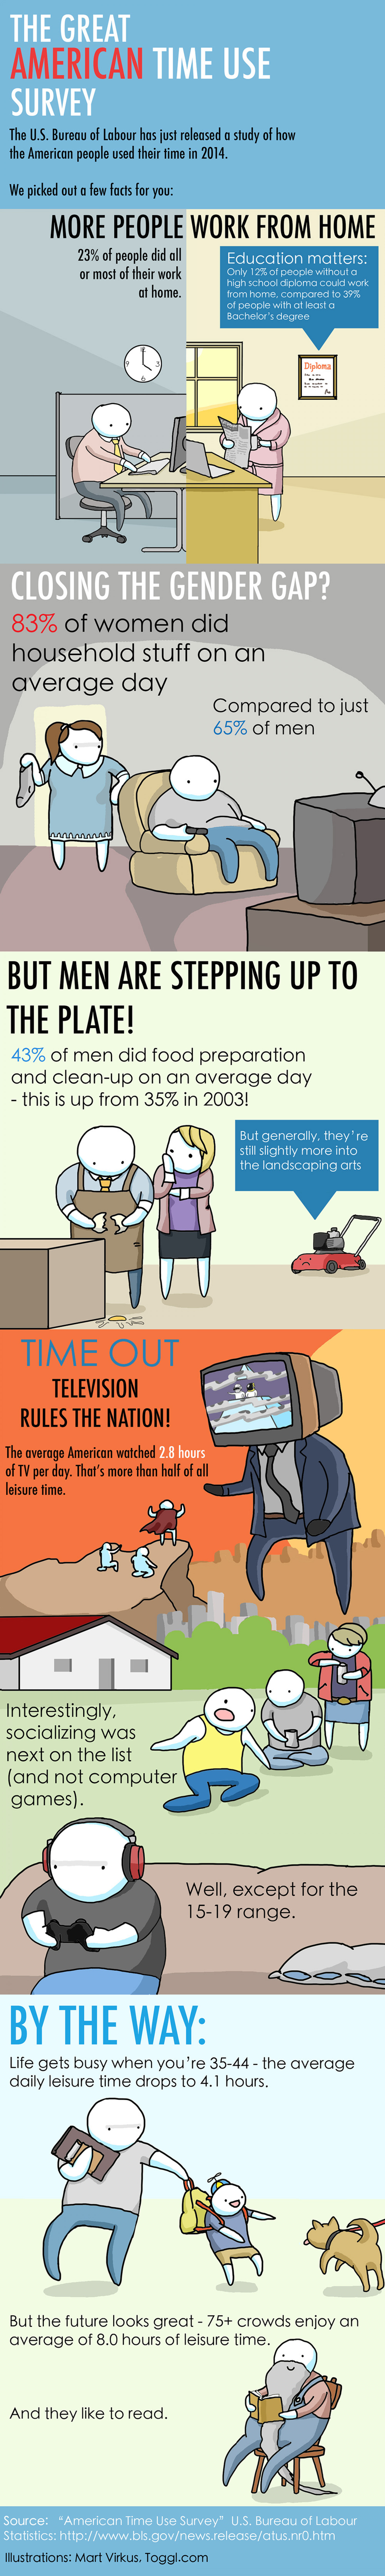 The Great American Time Use Survey Infographic